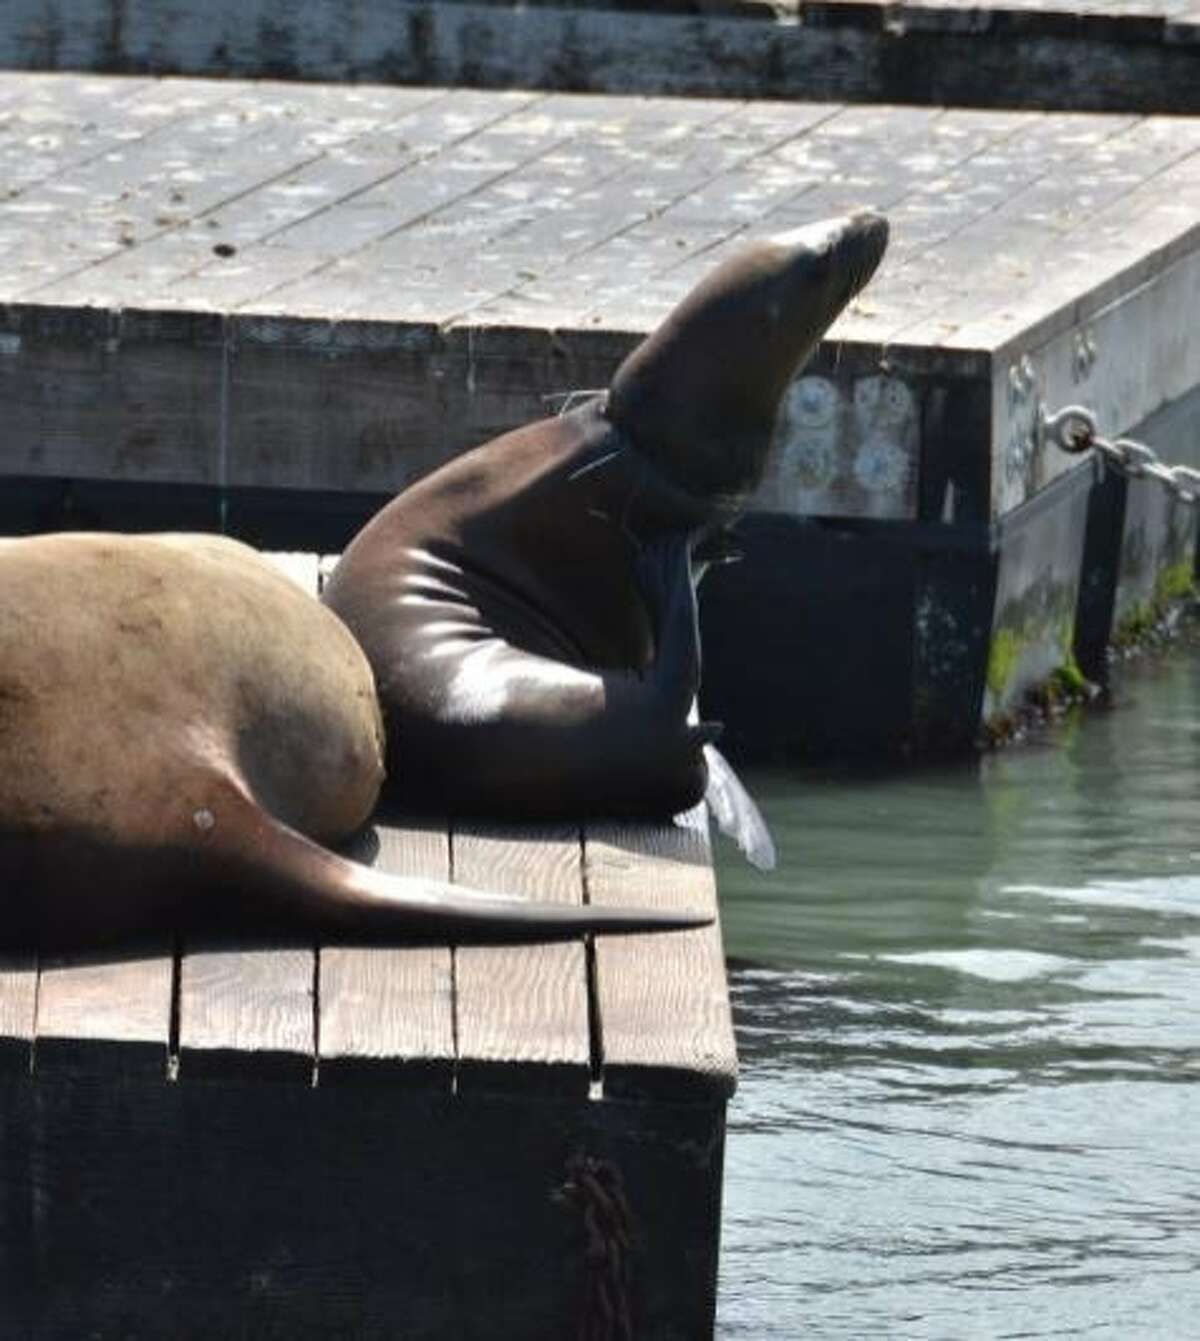 A sea lion at Pier 39, with what looks like fishing net tangled around its neck.